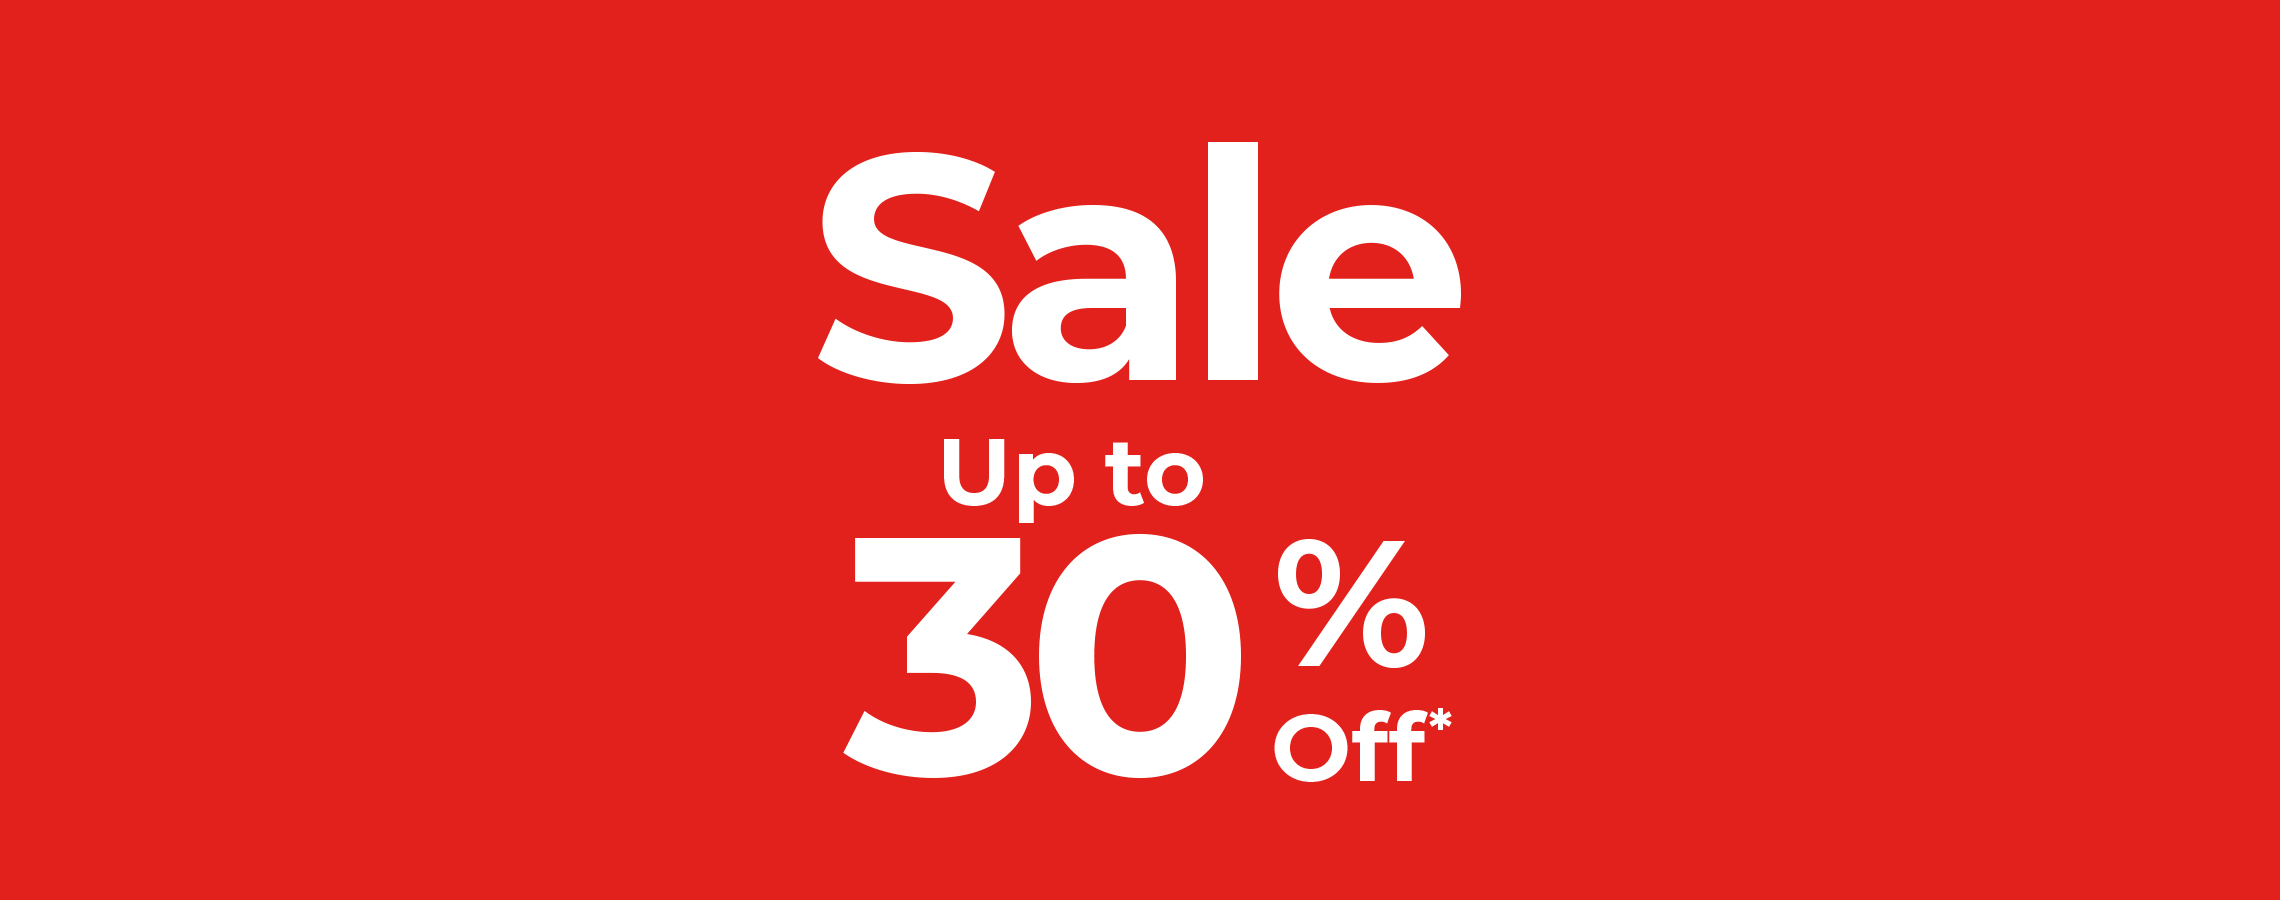 Shop up to 30% off* in the David Clulow Opticians Sale.